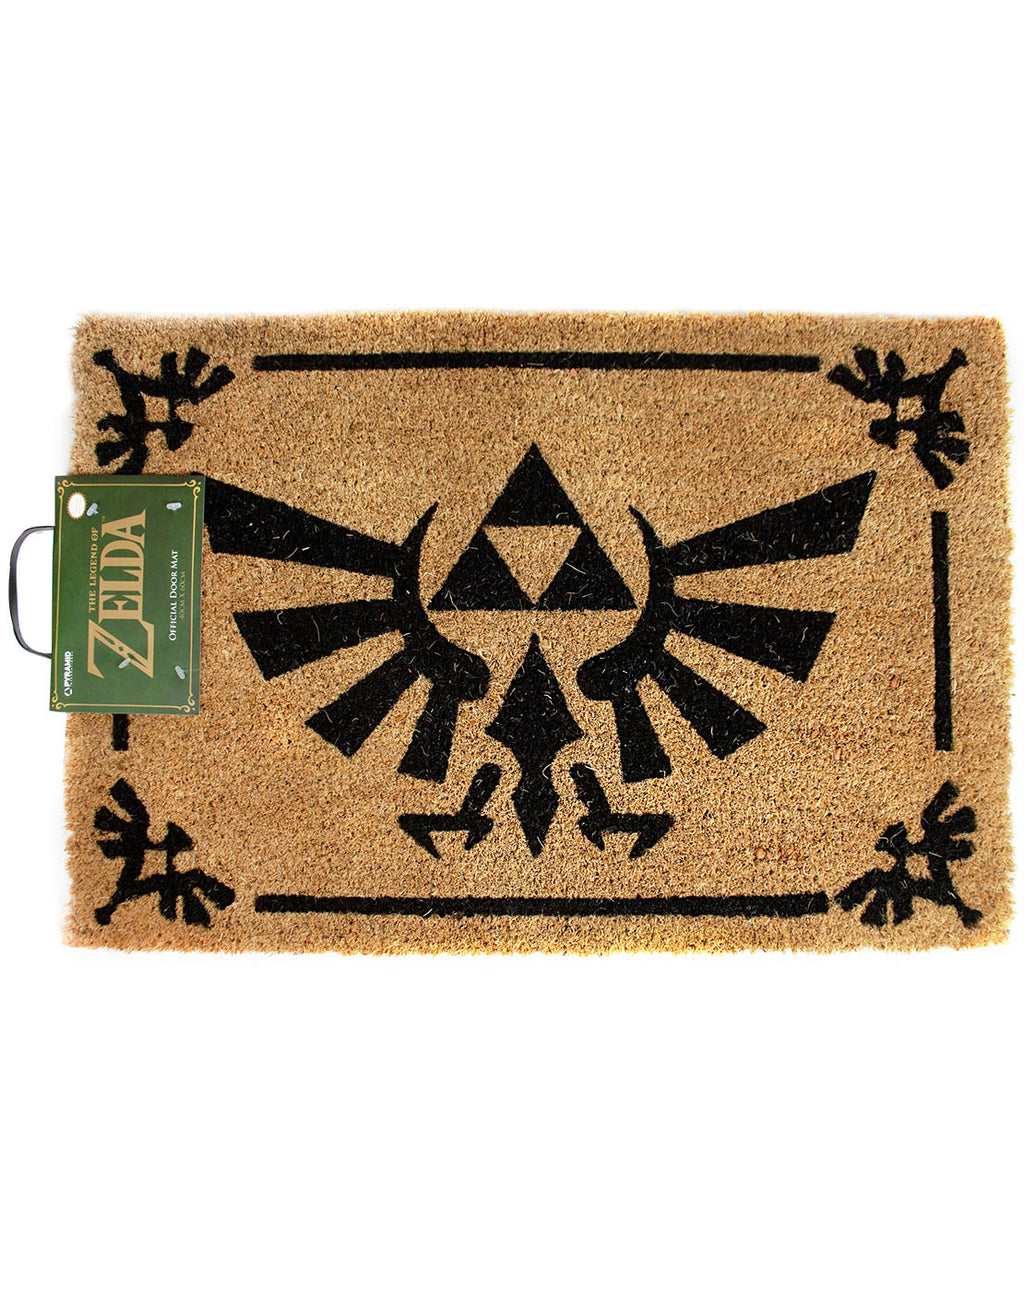 The Legend Of Zelda Triforce Logo Brown Door Mat 60x40cm